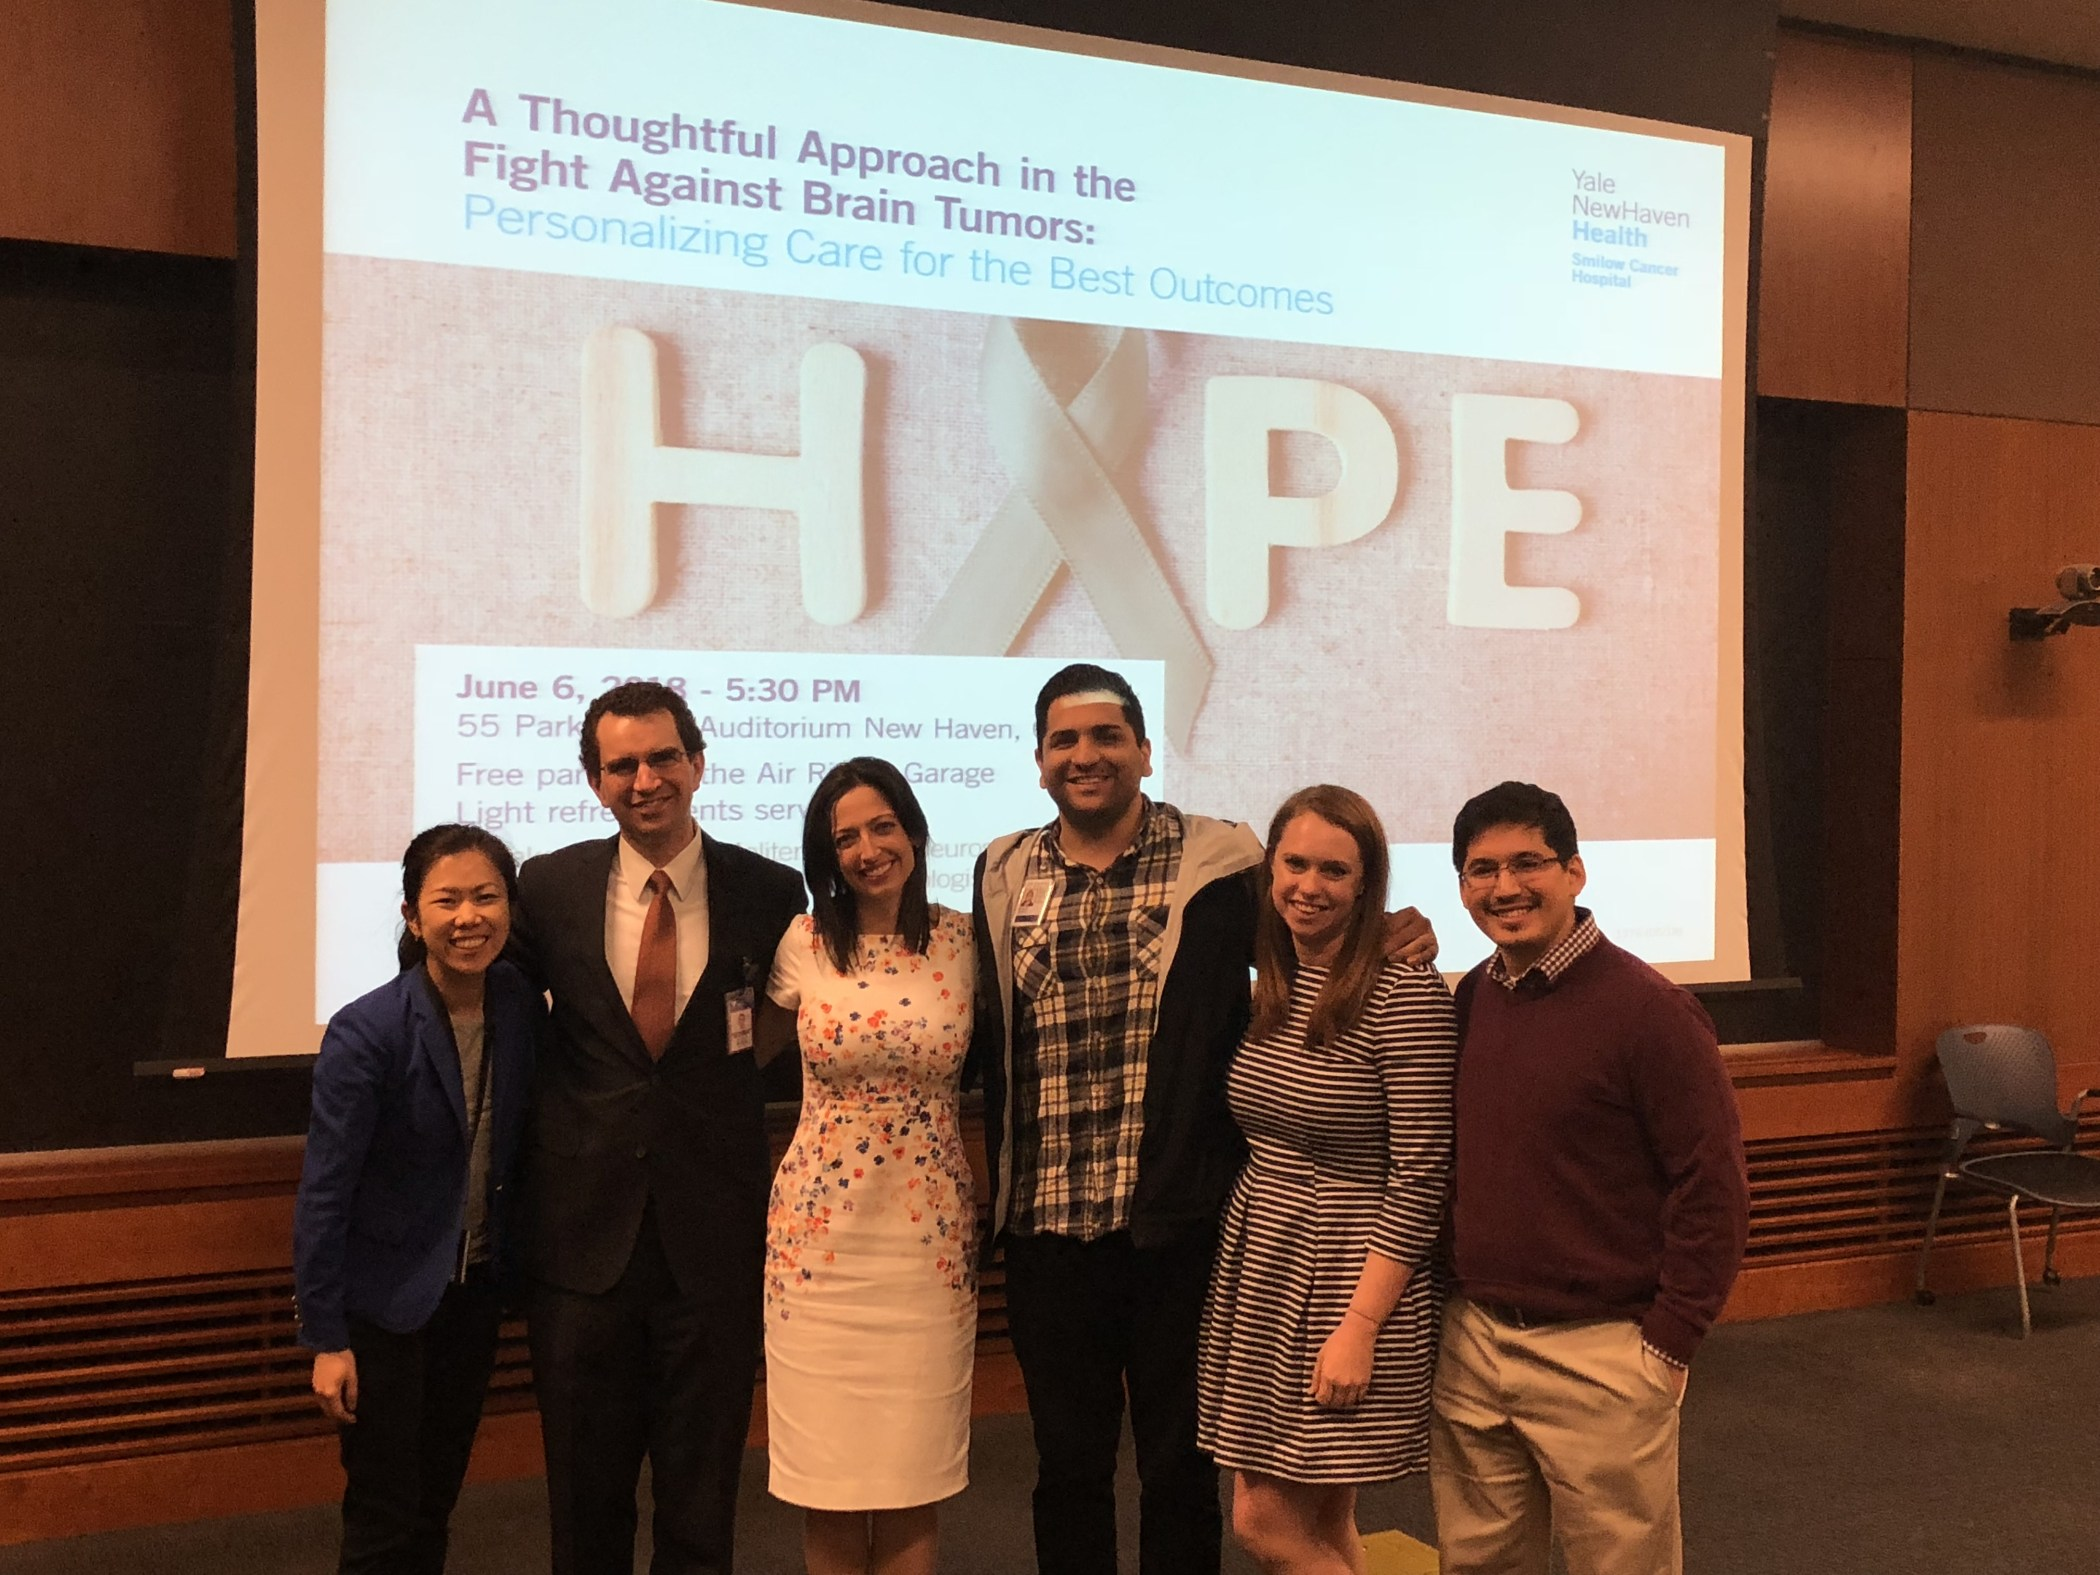 A Thoughtful Approach in the Fight Against Brain Tumors